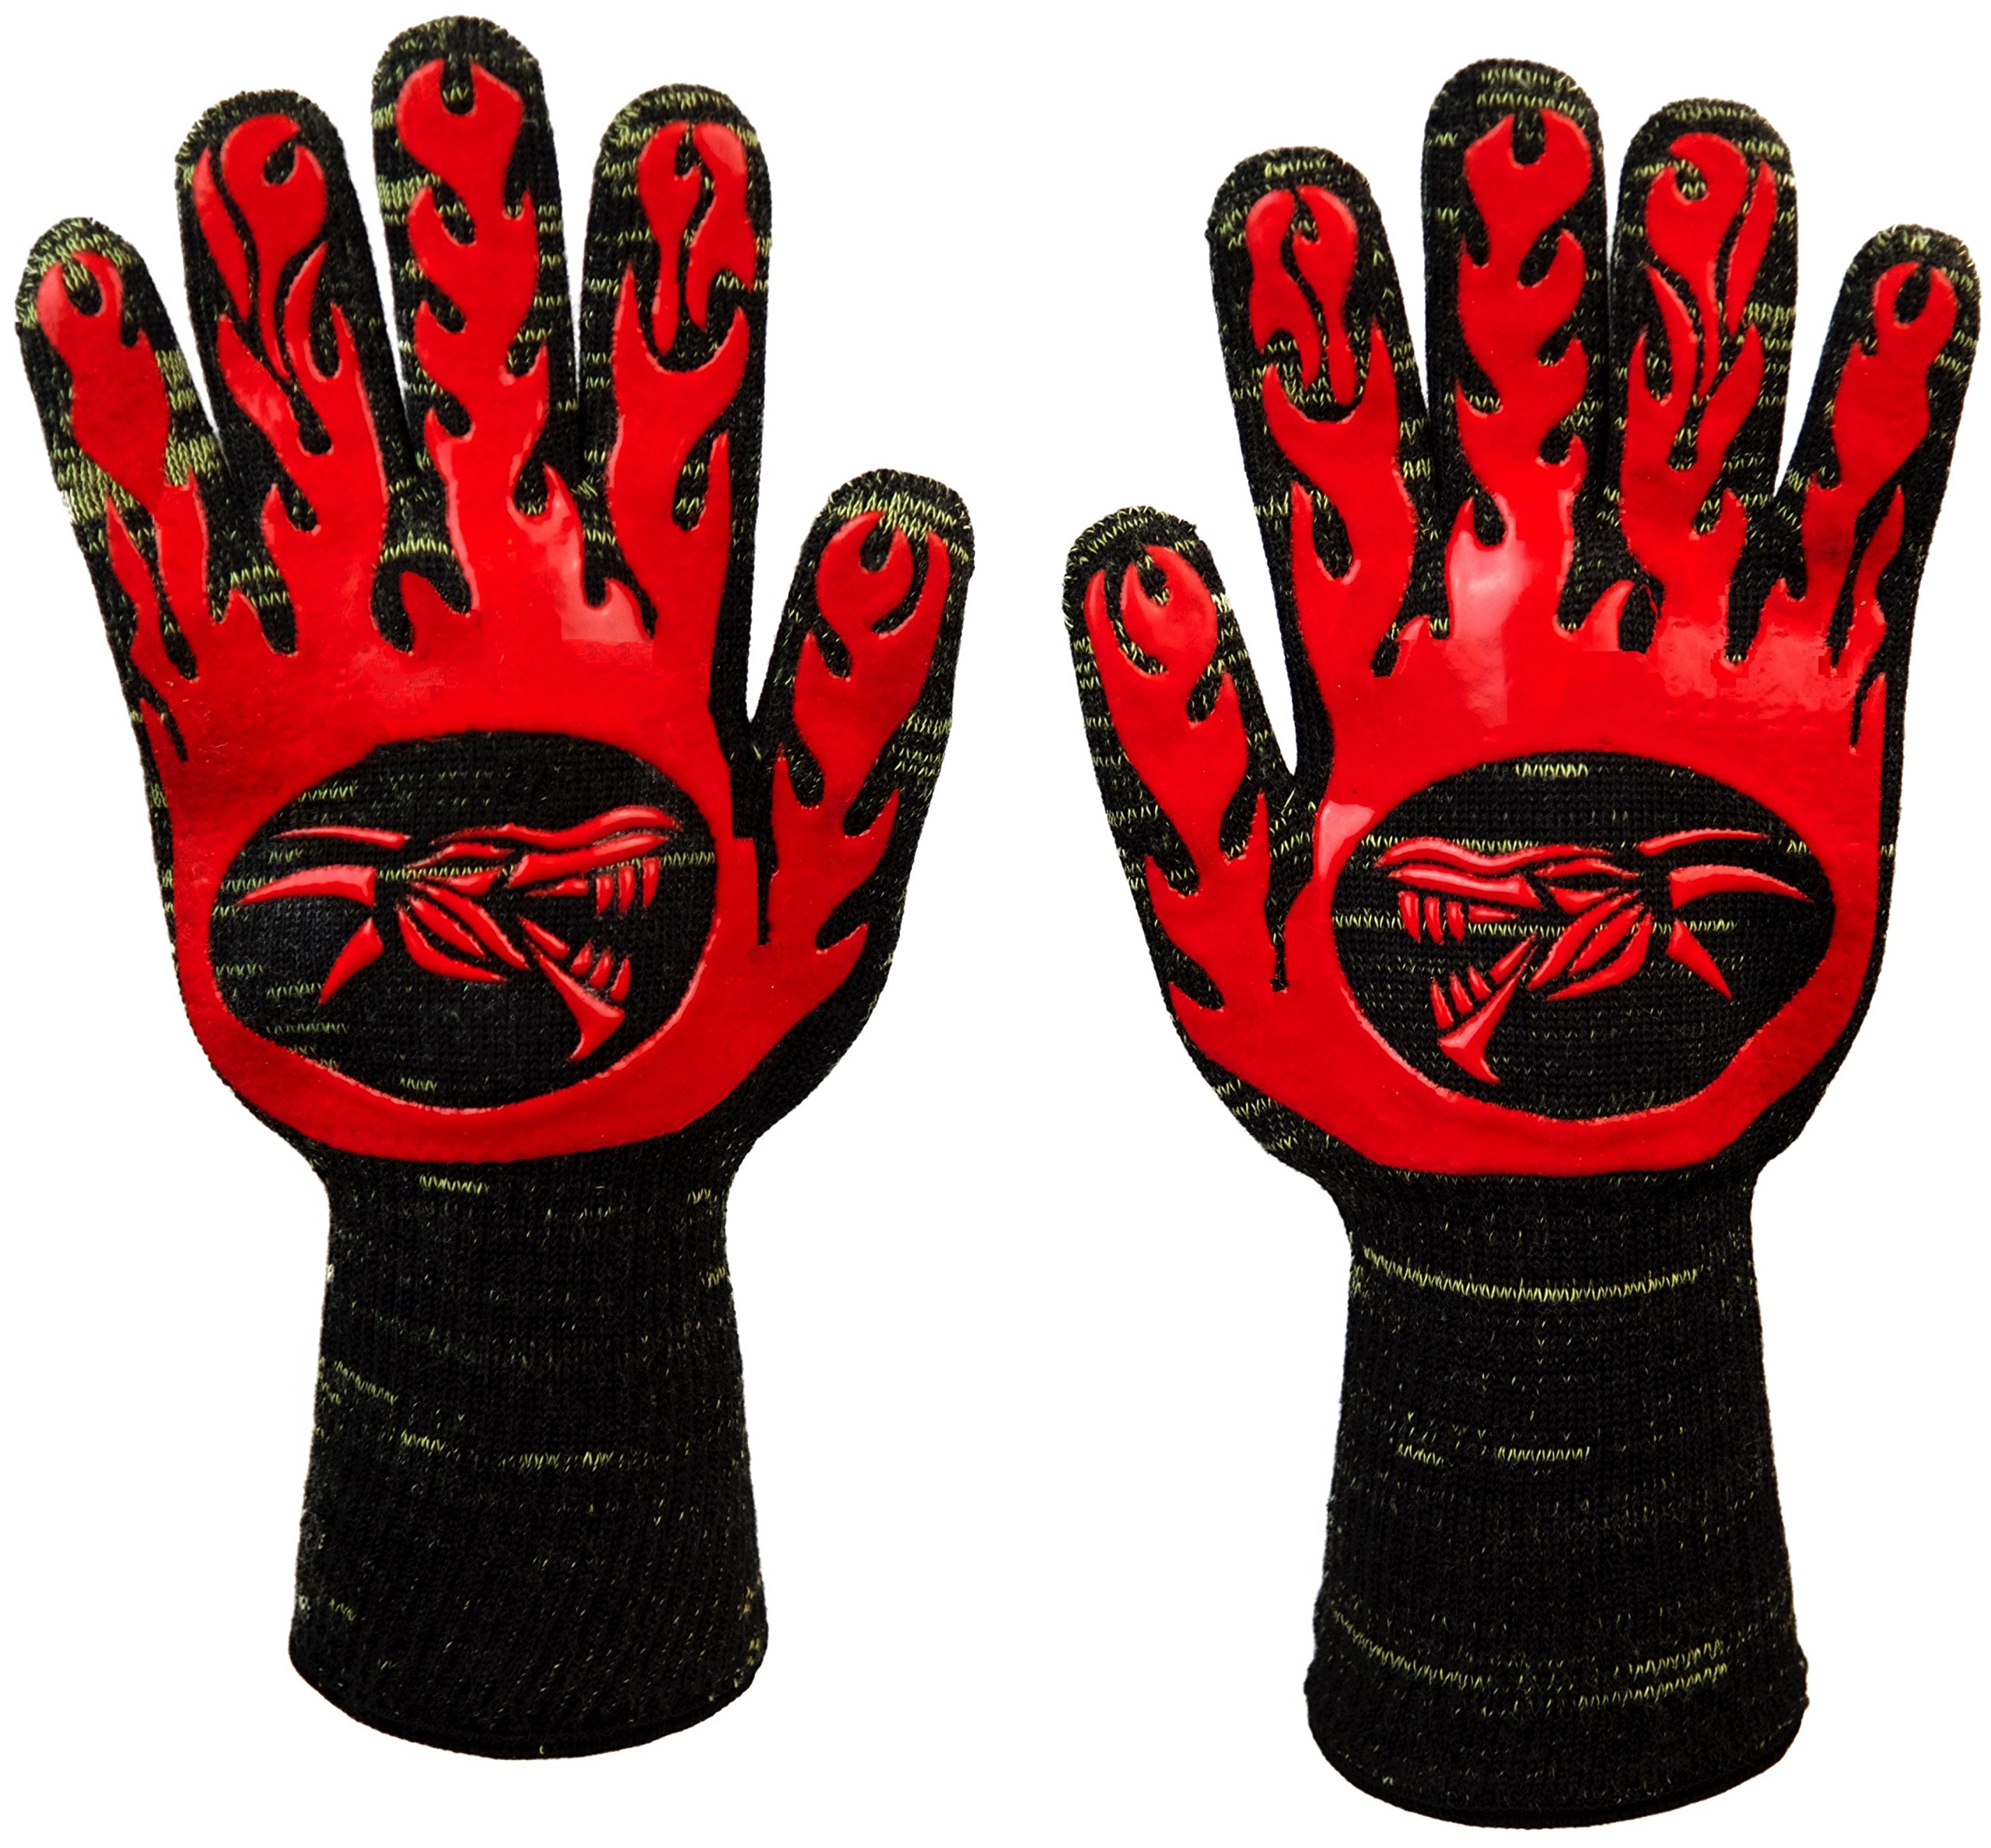 a8f82e308aa95e Get Quotations · Heat Resistant BBQ Gloves by Dragon Knuckle Oven Mitts EN  407 932ºF - Grilling Barbecue Charcoal